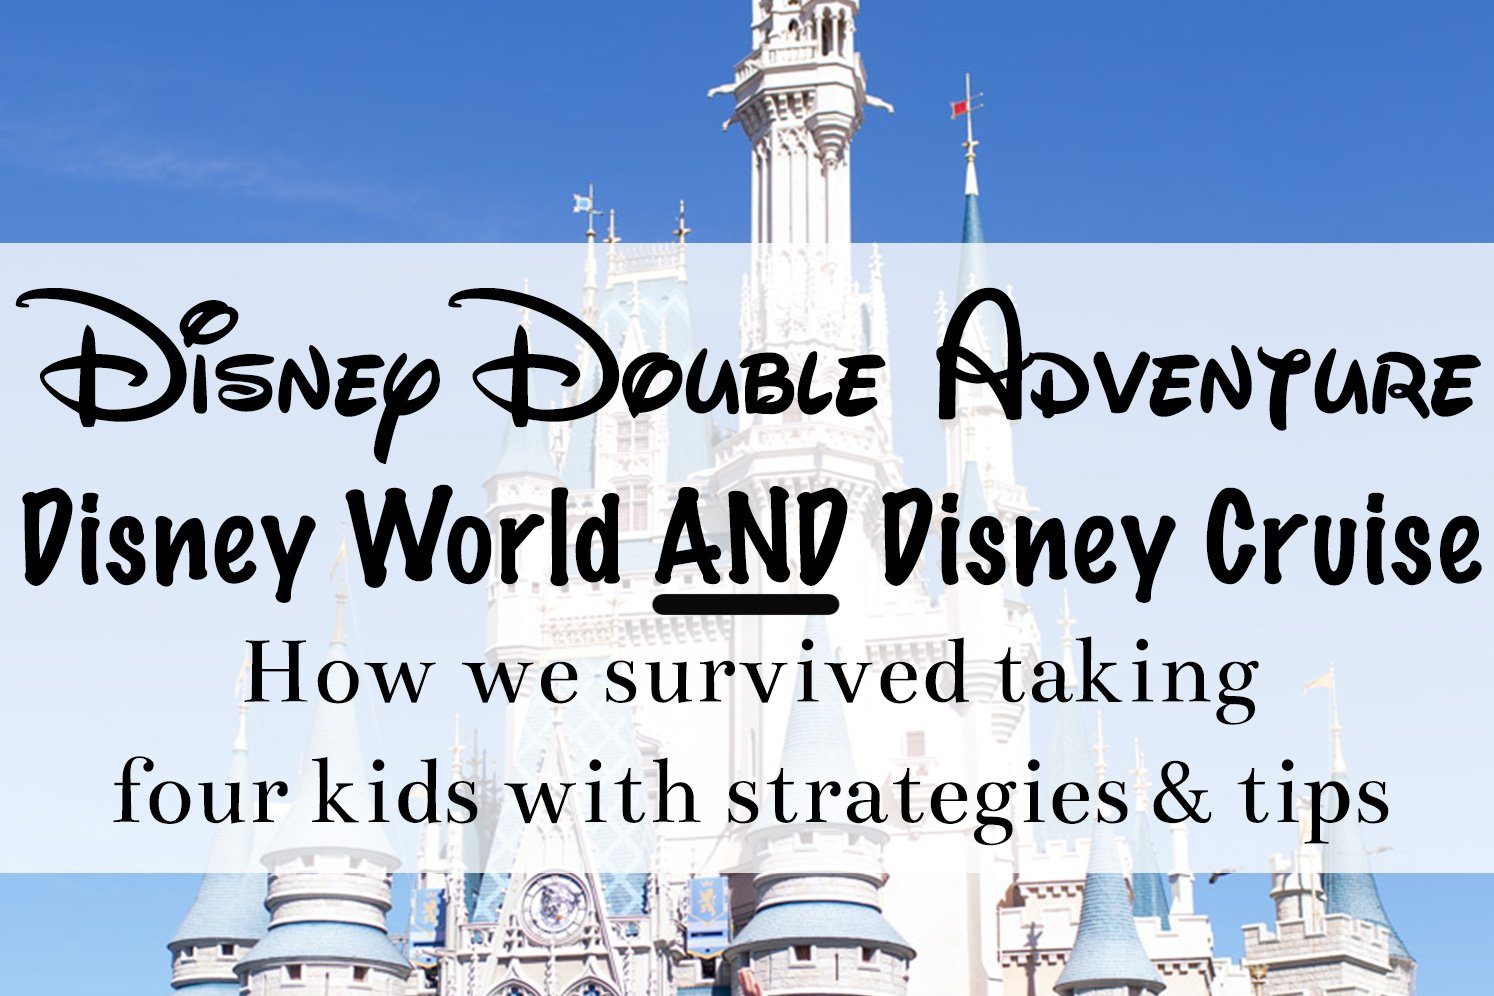 ULTIMATE Trip Report with Strategies on an EPIC Disney World and Disney Cruise with Four Kids